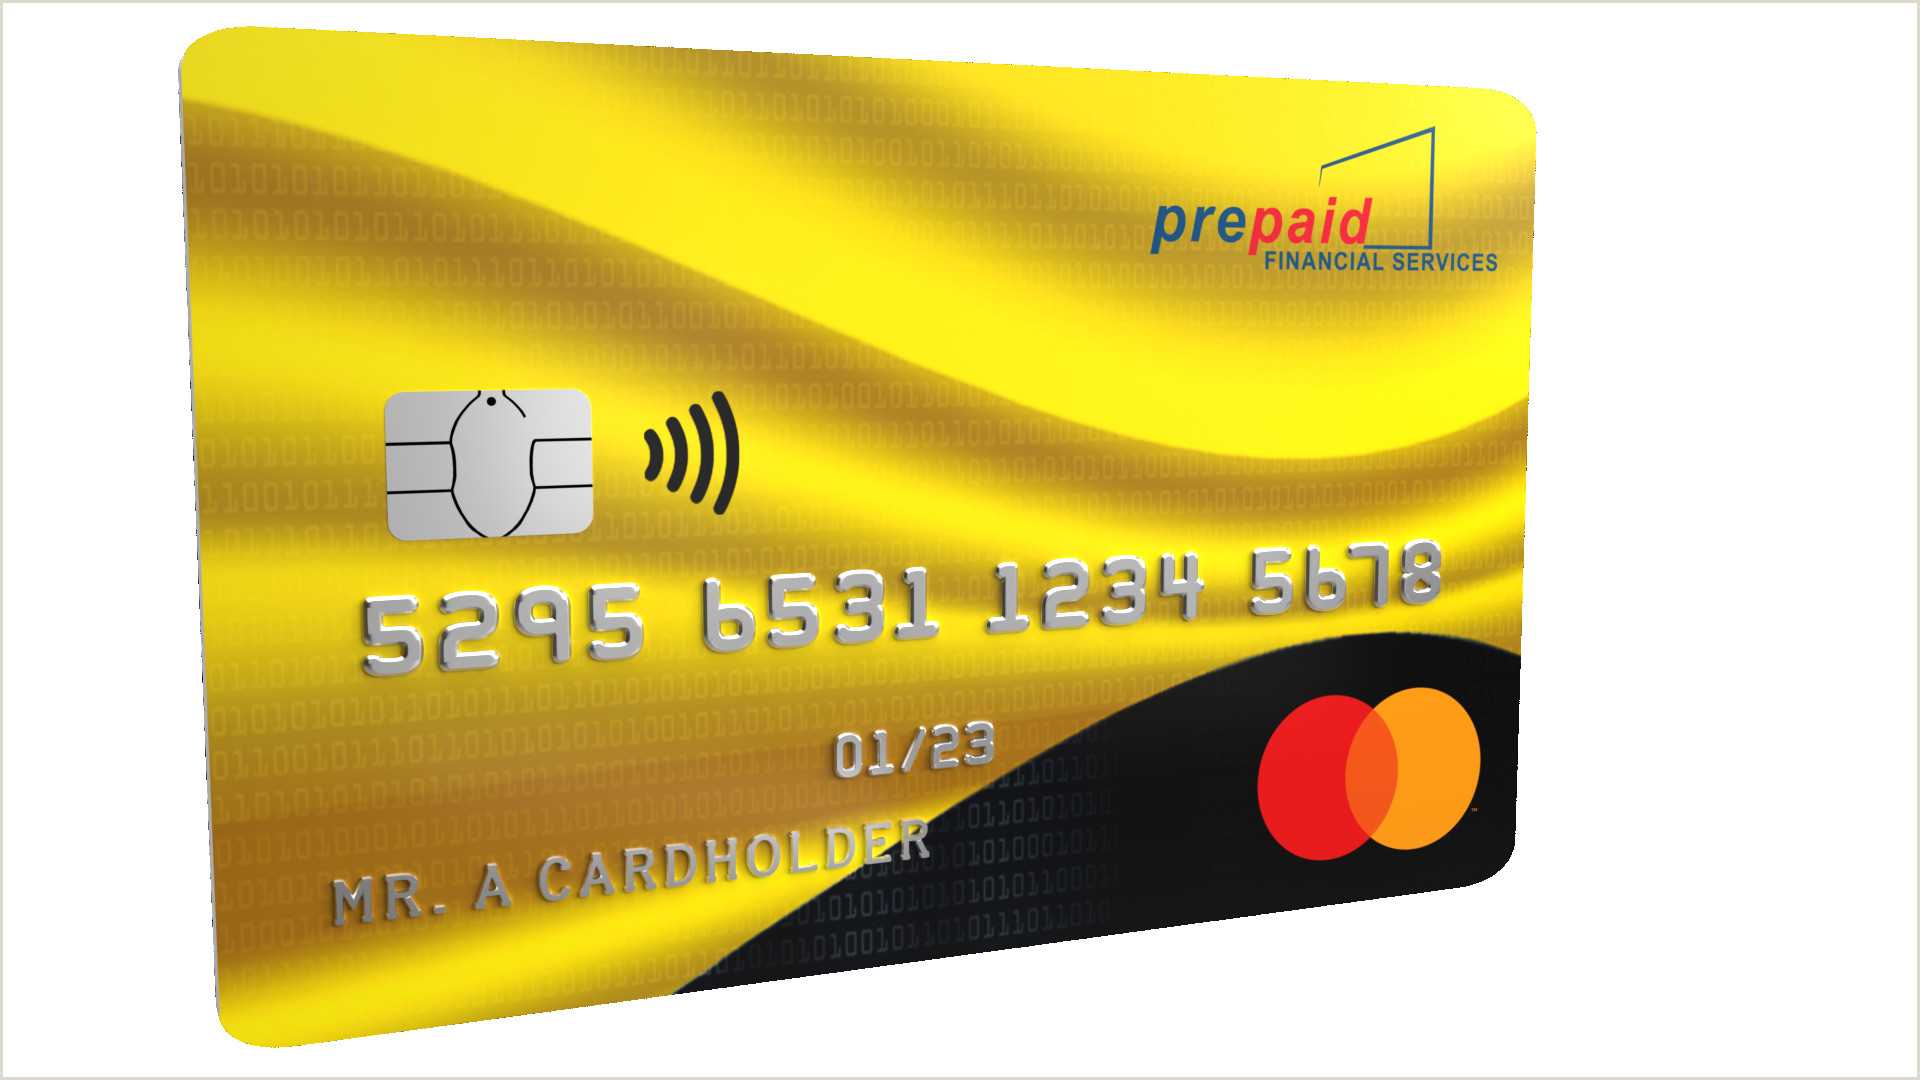 Best Business Cards Financ Prepaid Financial Services Pre Paid Card Solutions Uk